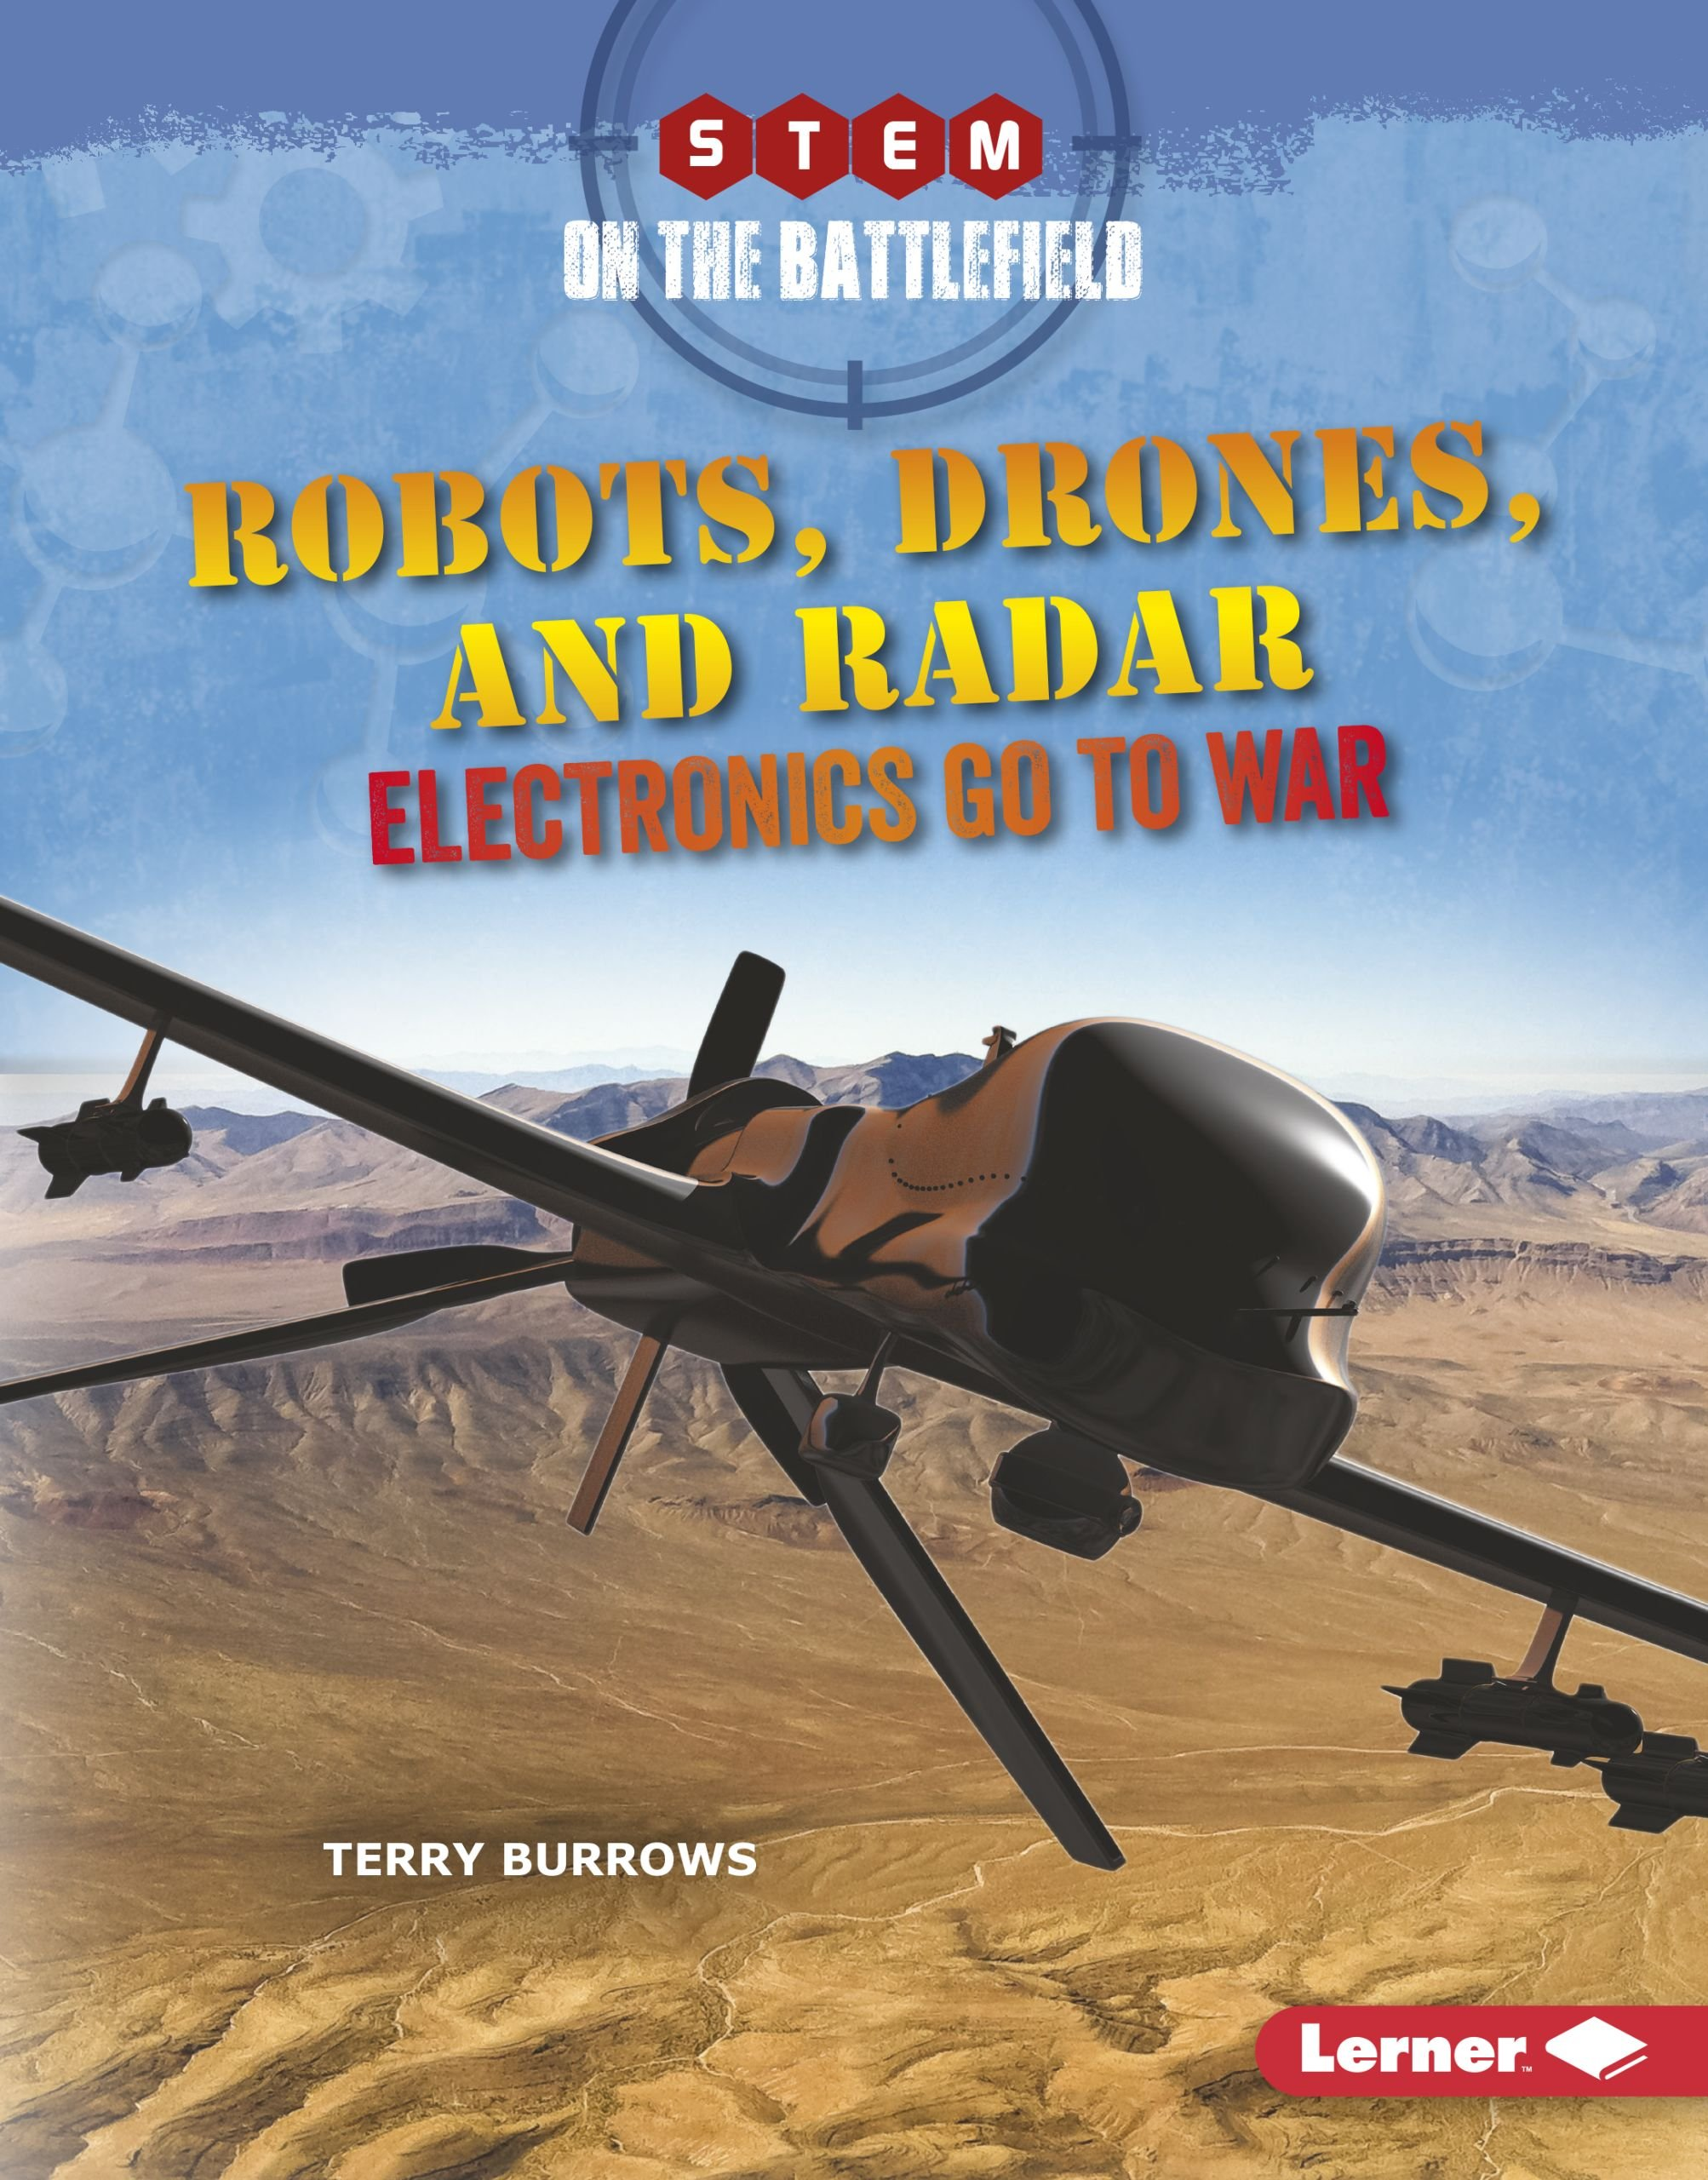 Read Online Robots, Drones, and Radar: Electronics Go to War (Stem on the Battlefield) PDF